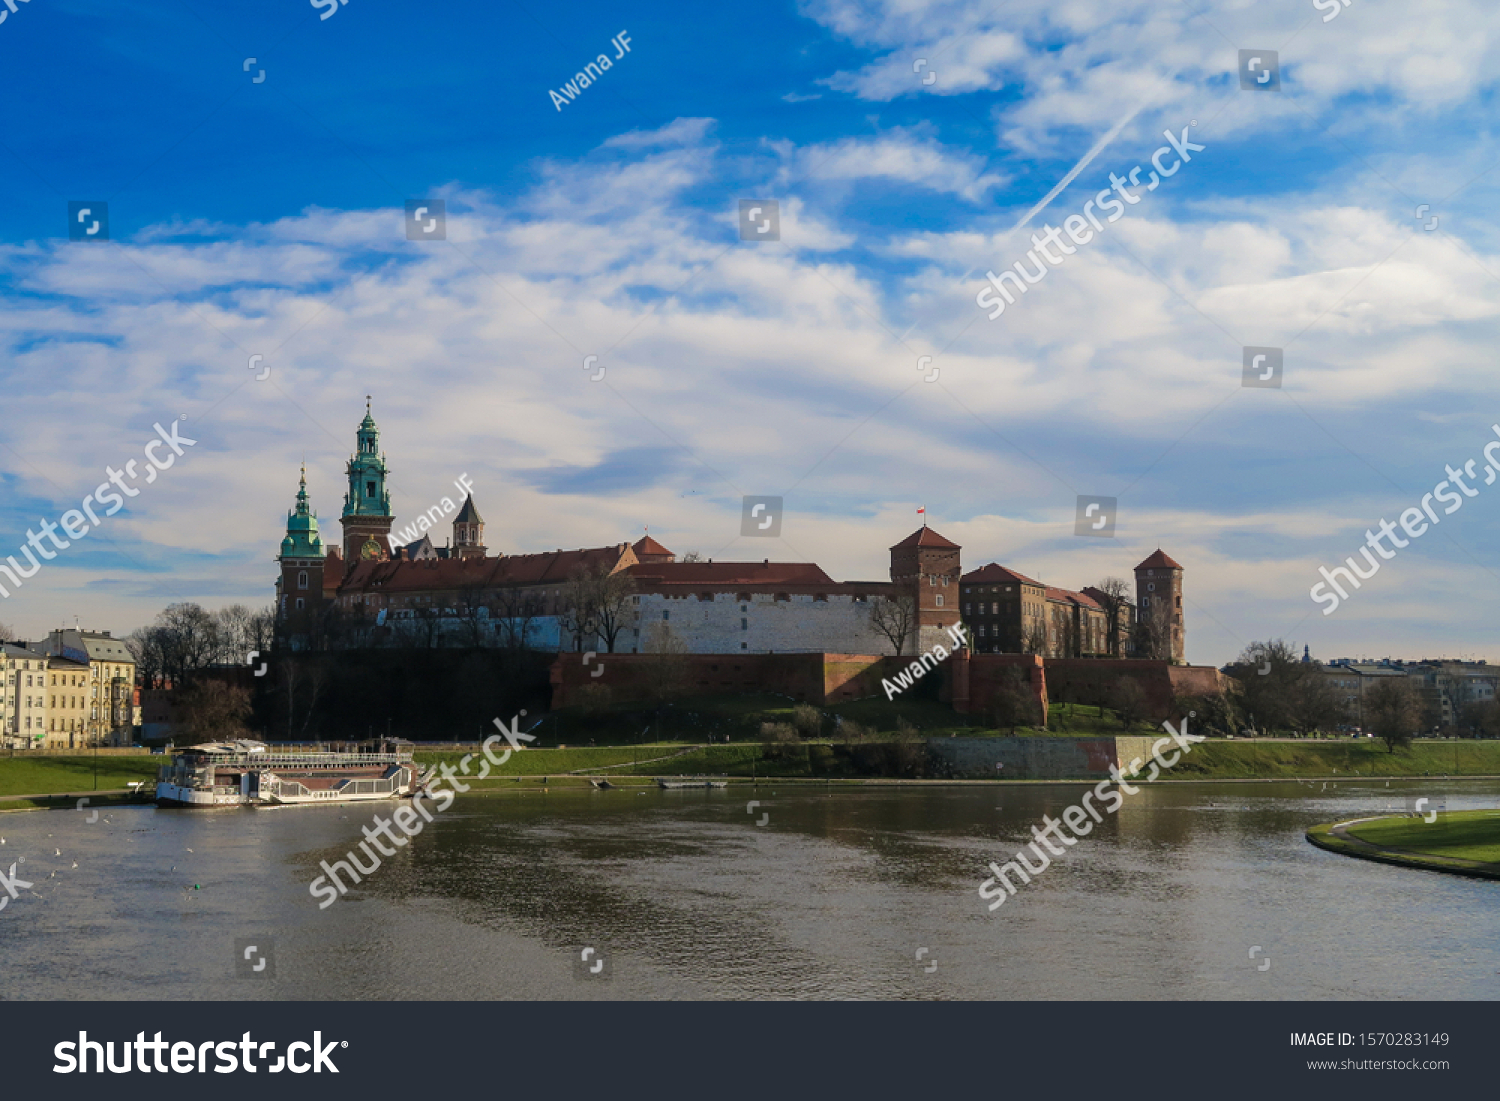 stock-photo-view-of-the-wawel-castle-in-